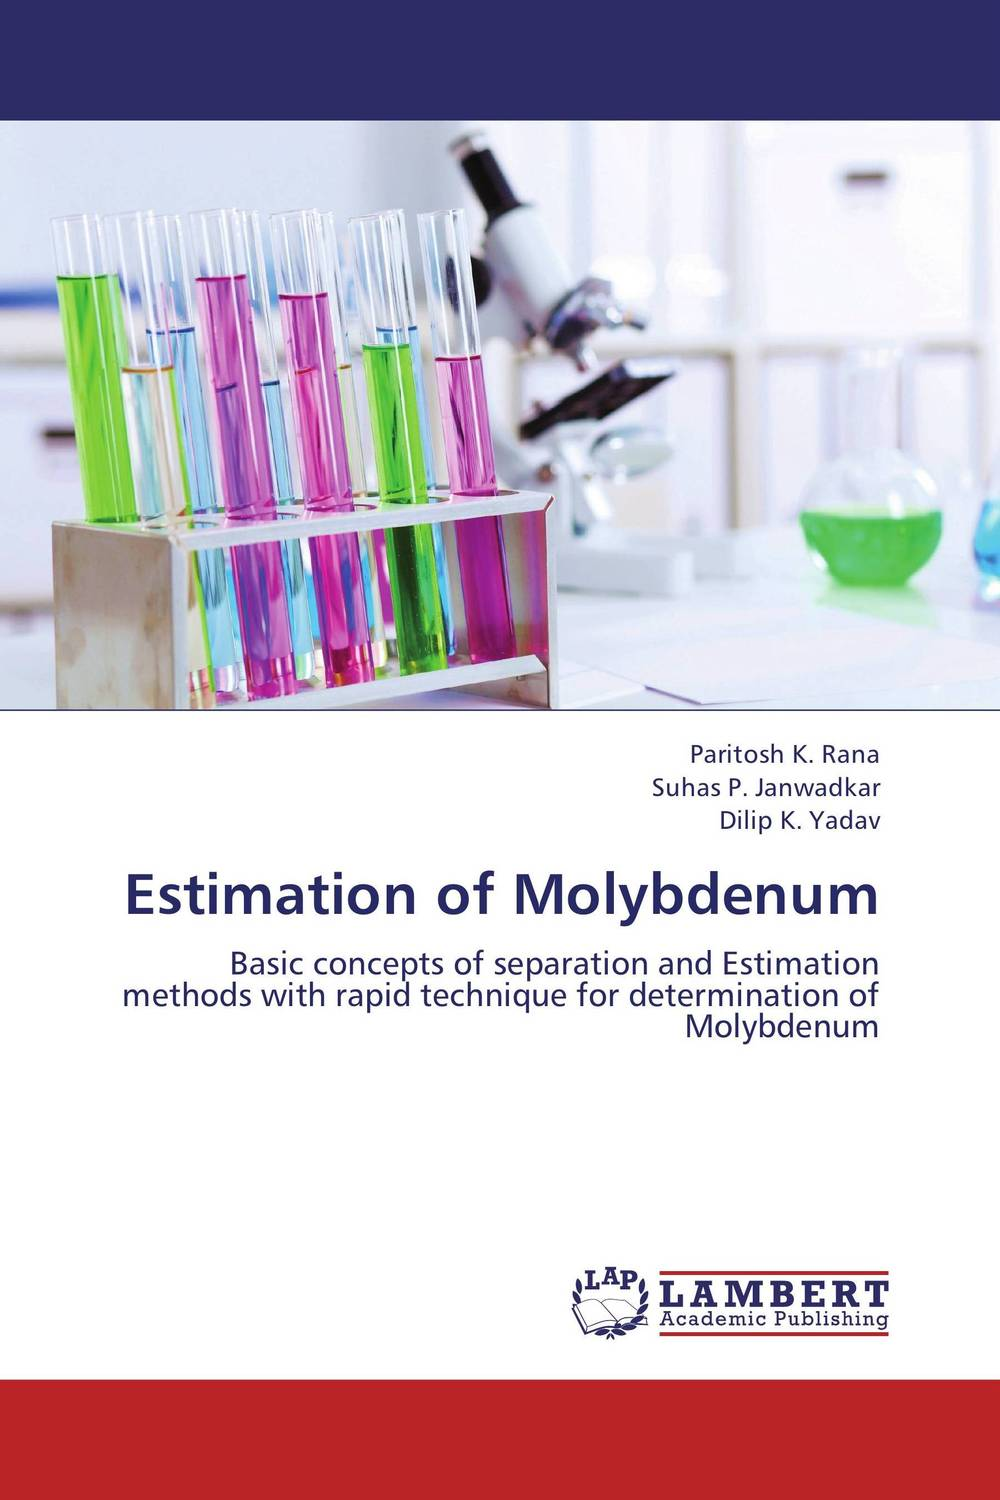 Estimation of Molybdenum a novel separation technique using hydrotropes